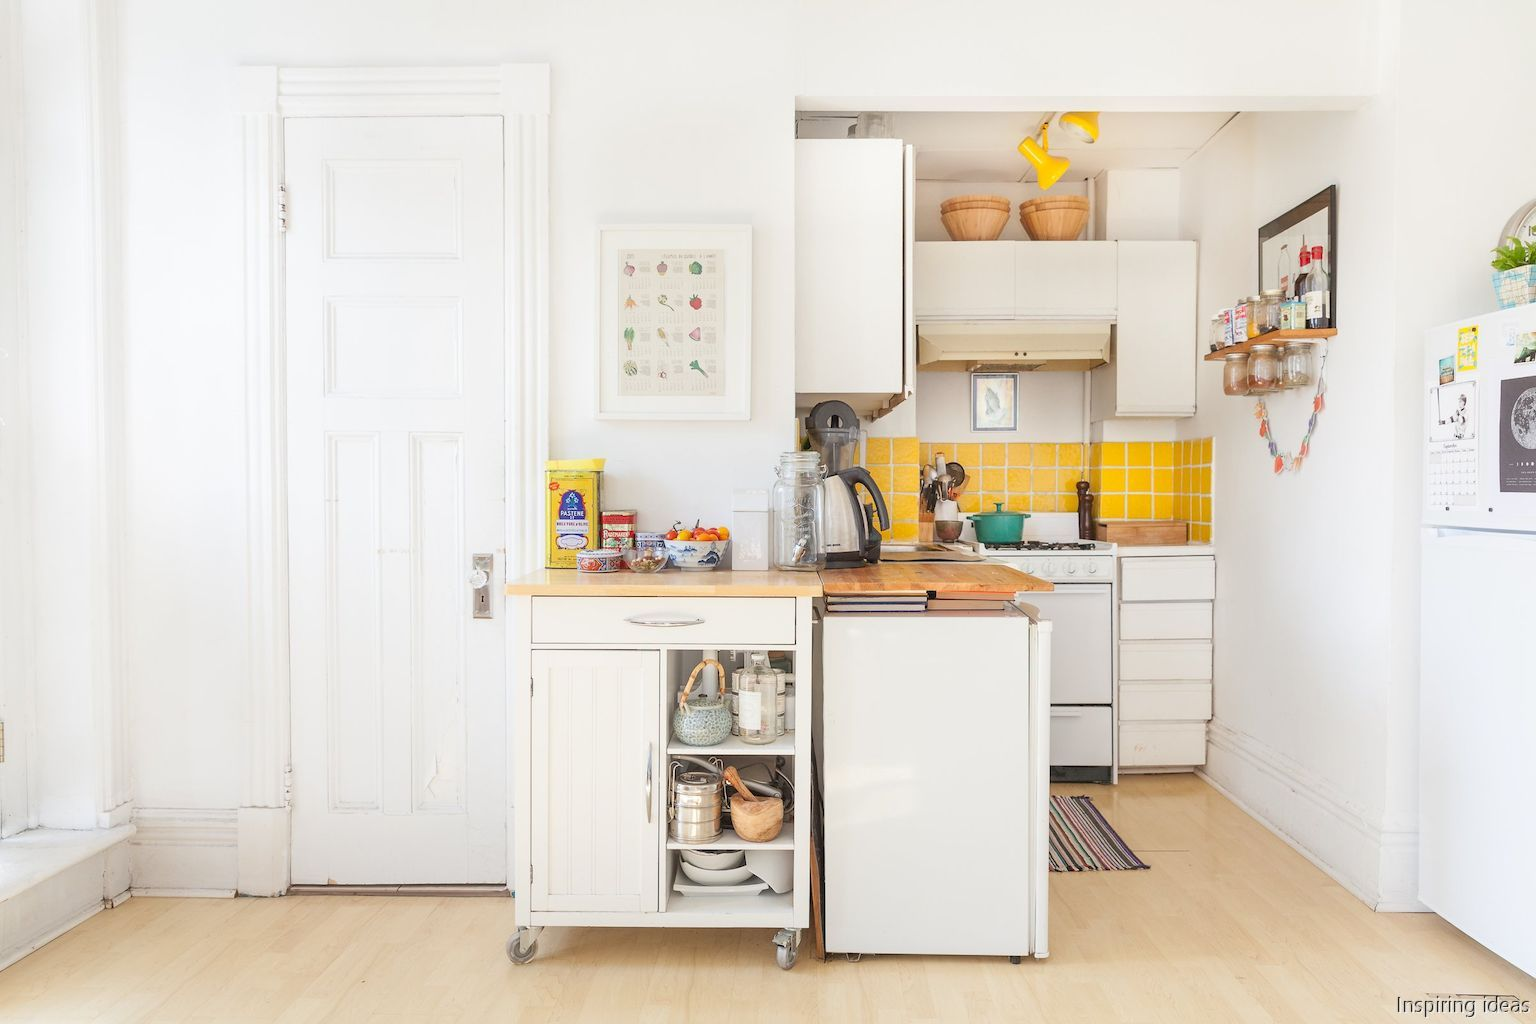 Awesome 60 Clever Renovations Ideas for Renters